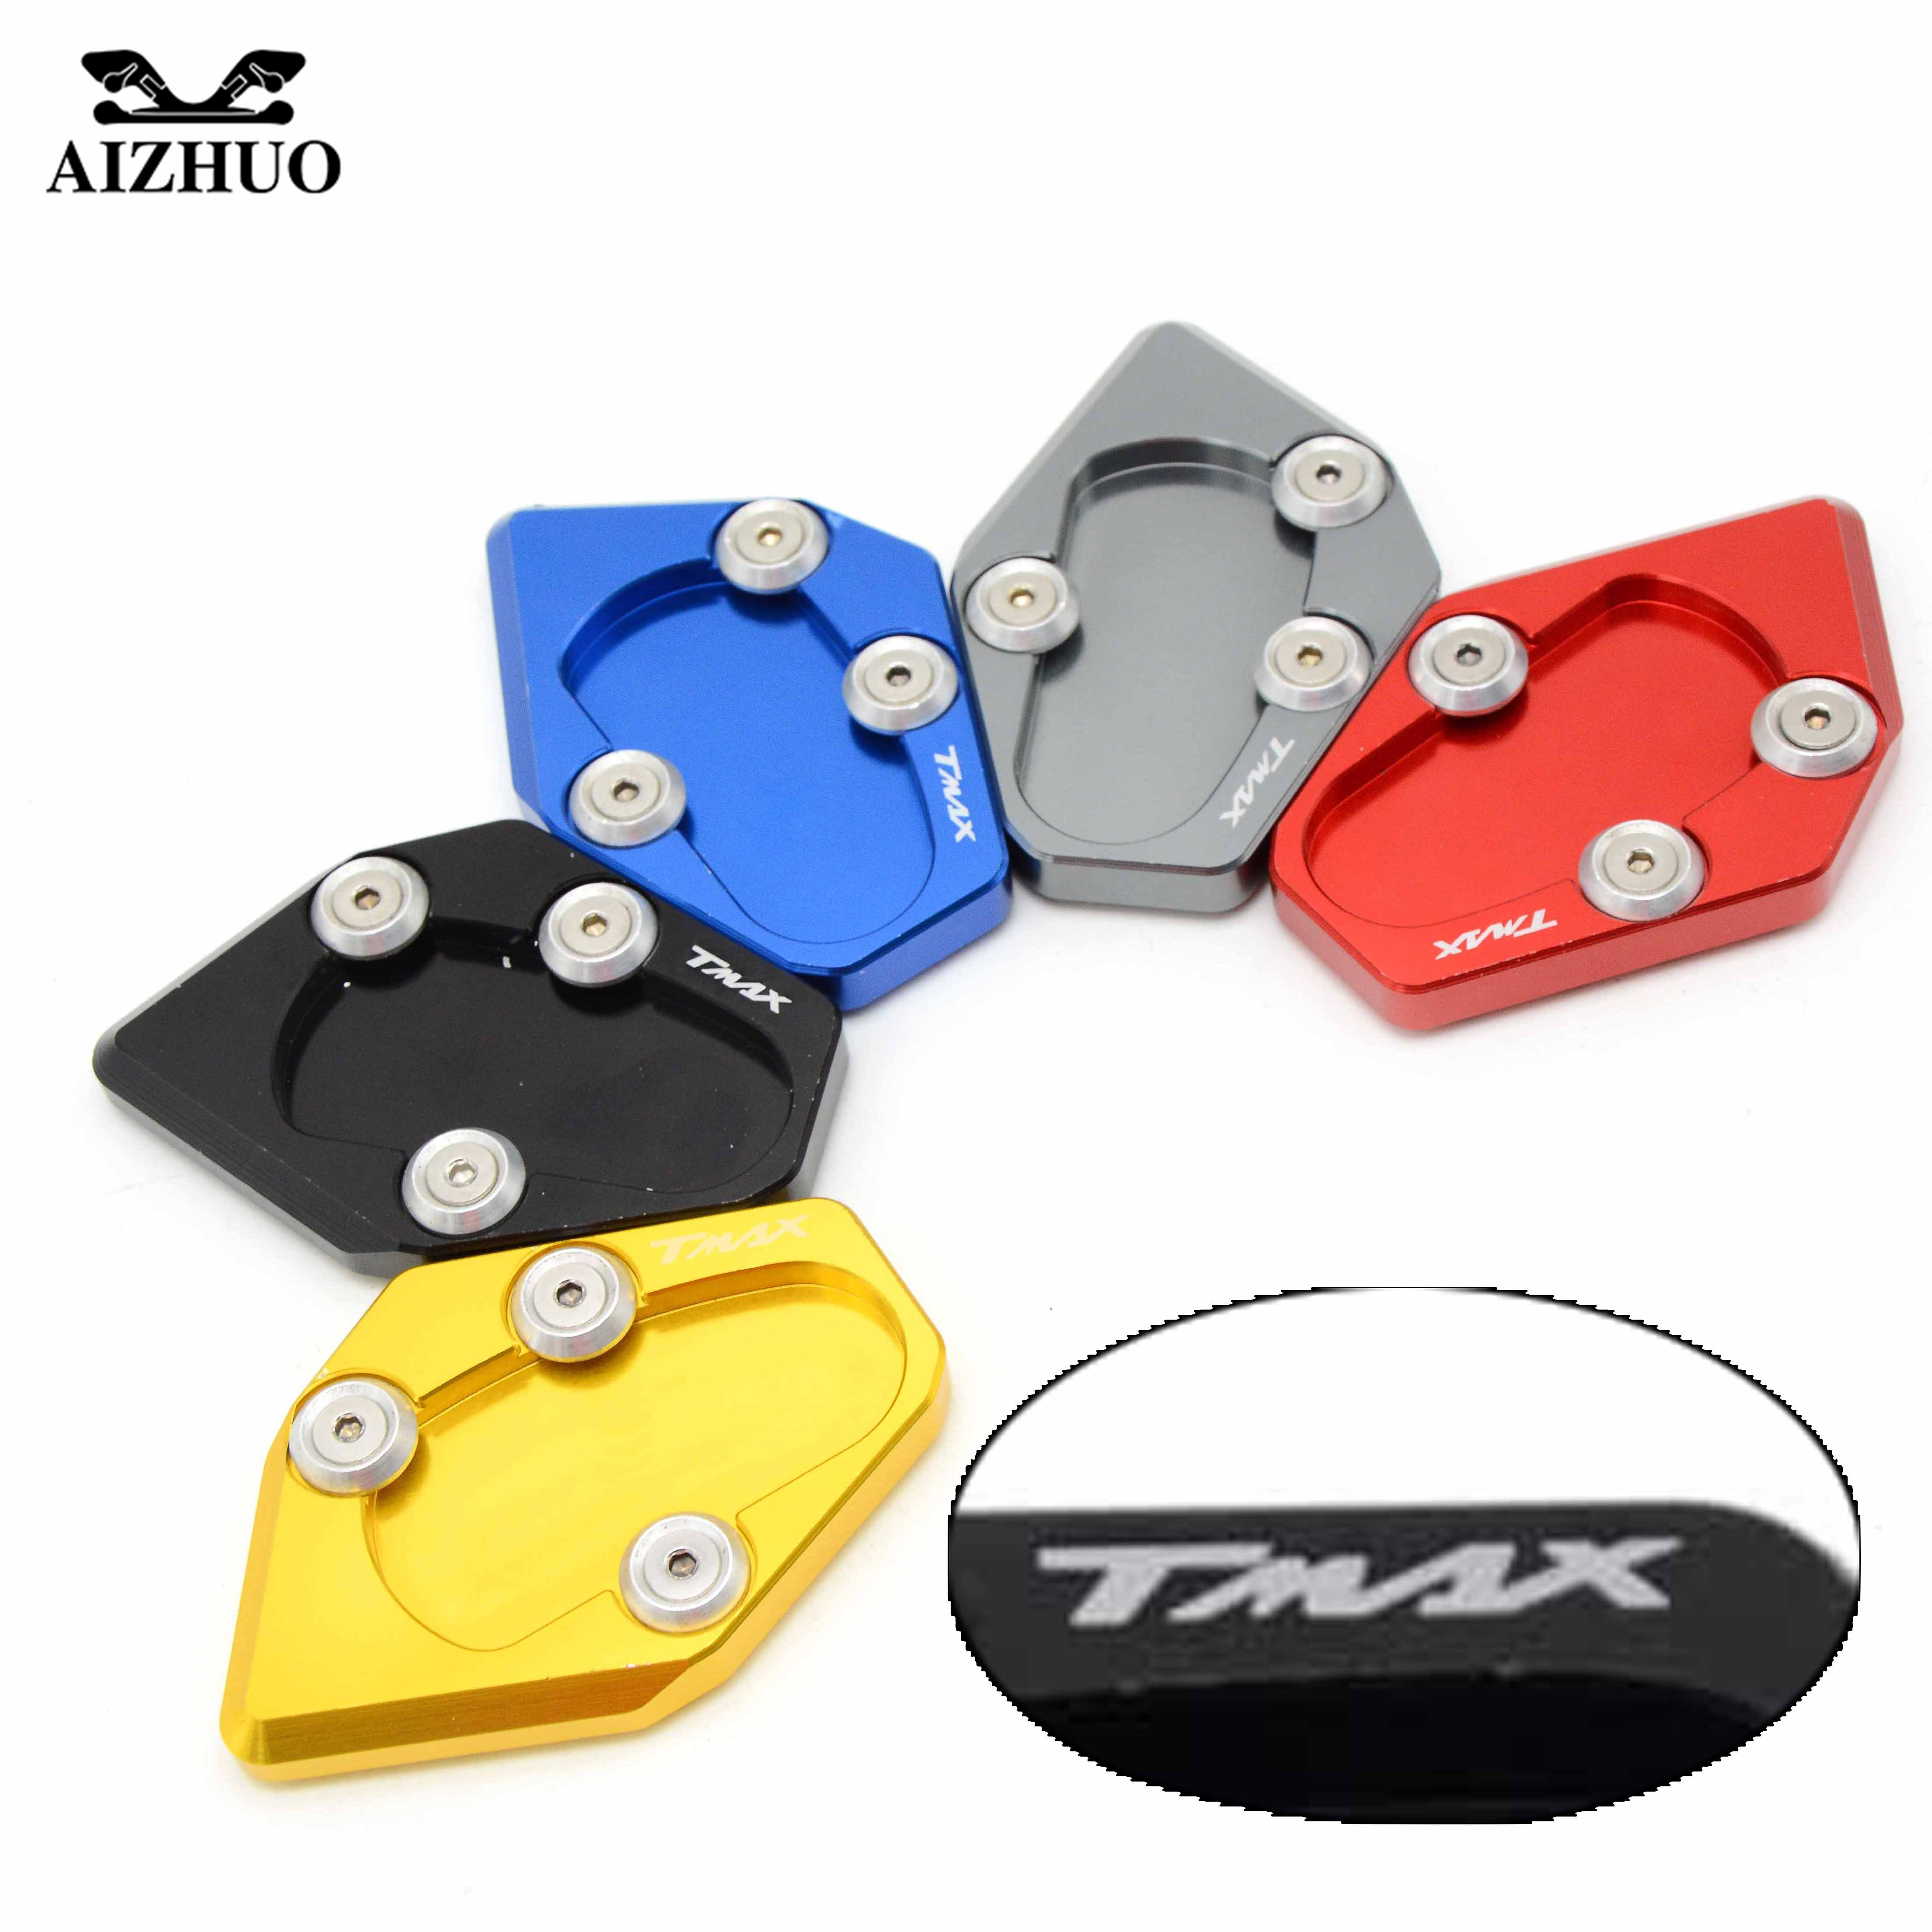 Motorcycle Kickstand Enlarge Extension Side Stand Plate Enlarge For Yamaha T-MAX 530 TMAX 530 XP530 XP 530 2015-2016